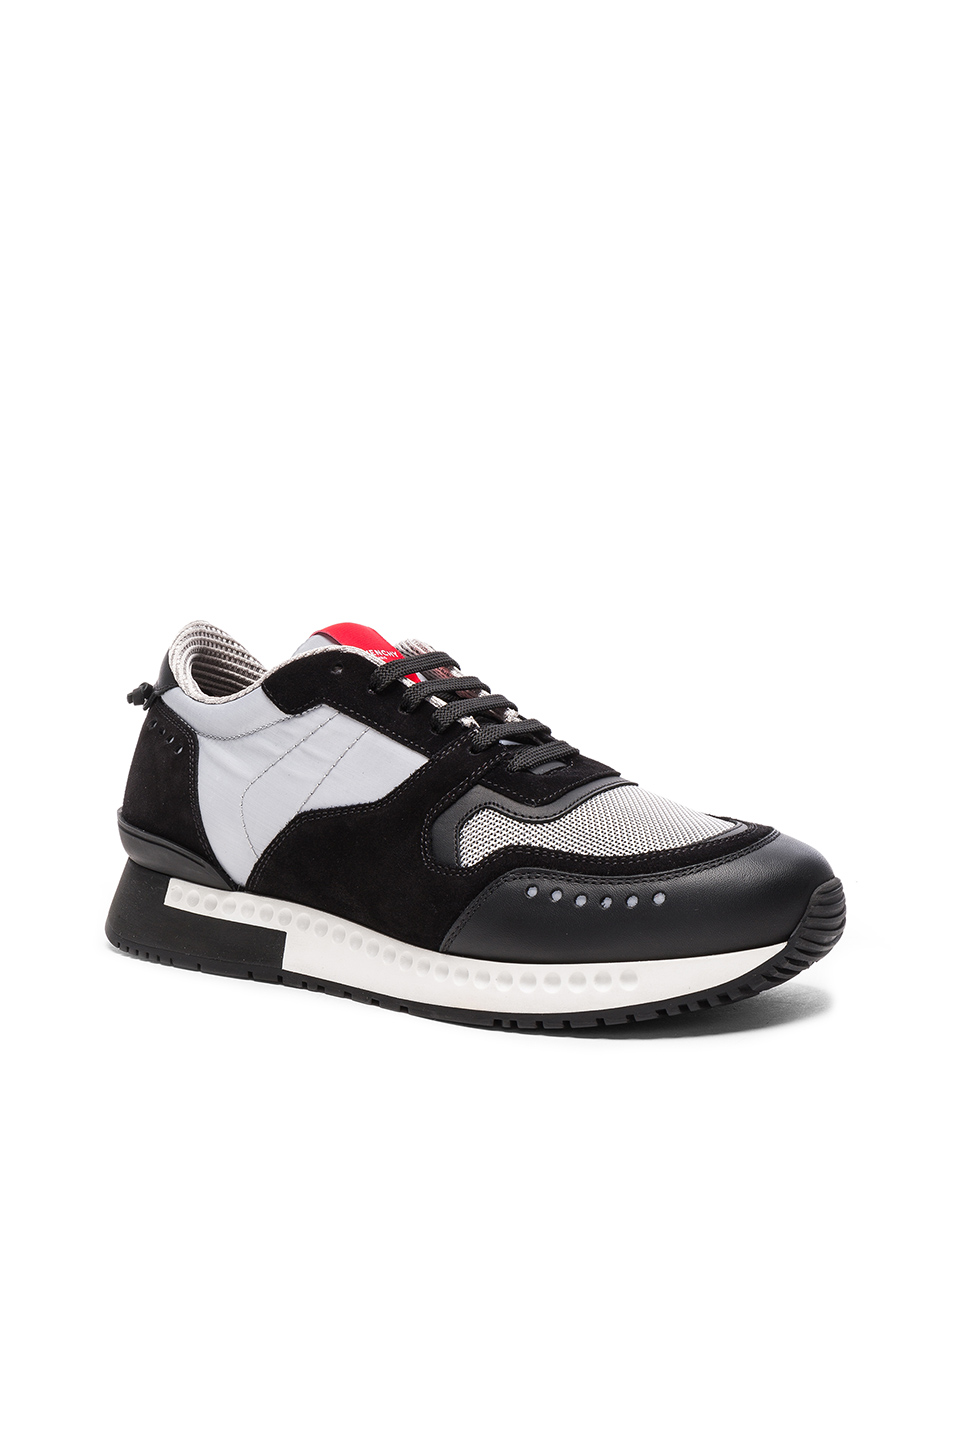 Givenchy Runner Active Nylon Sneakers in Black,Gray,Metallics